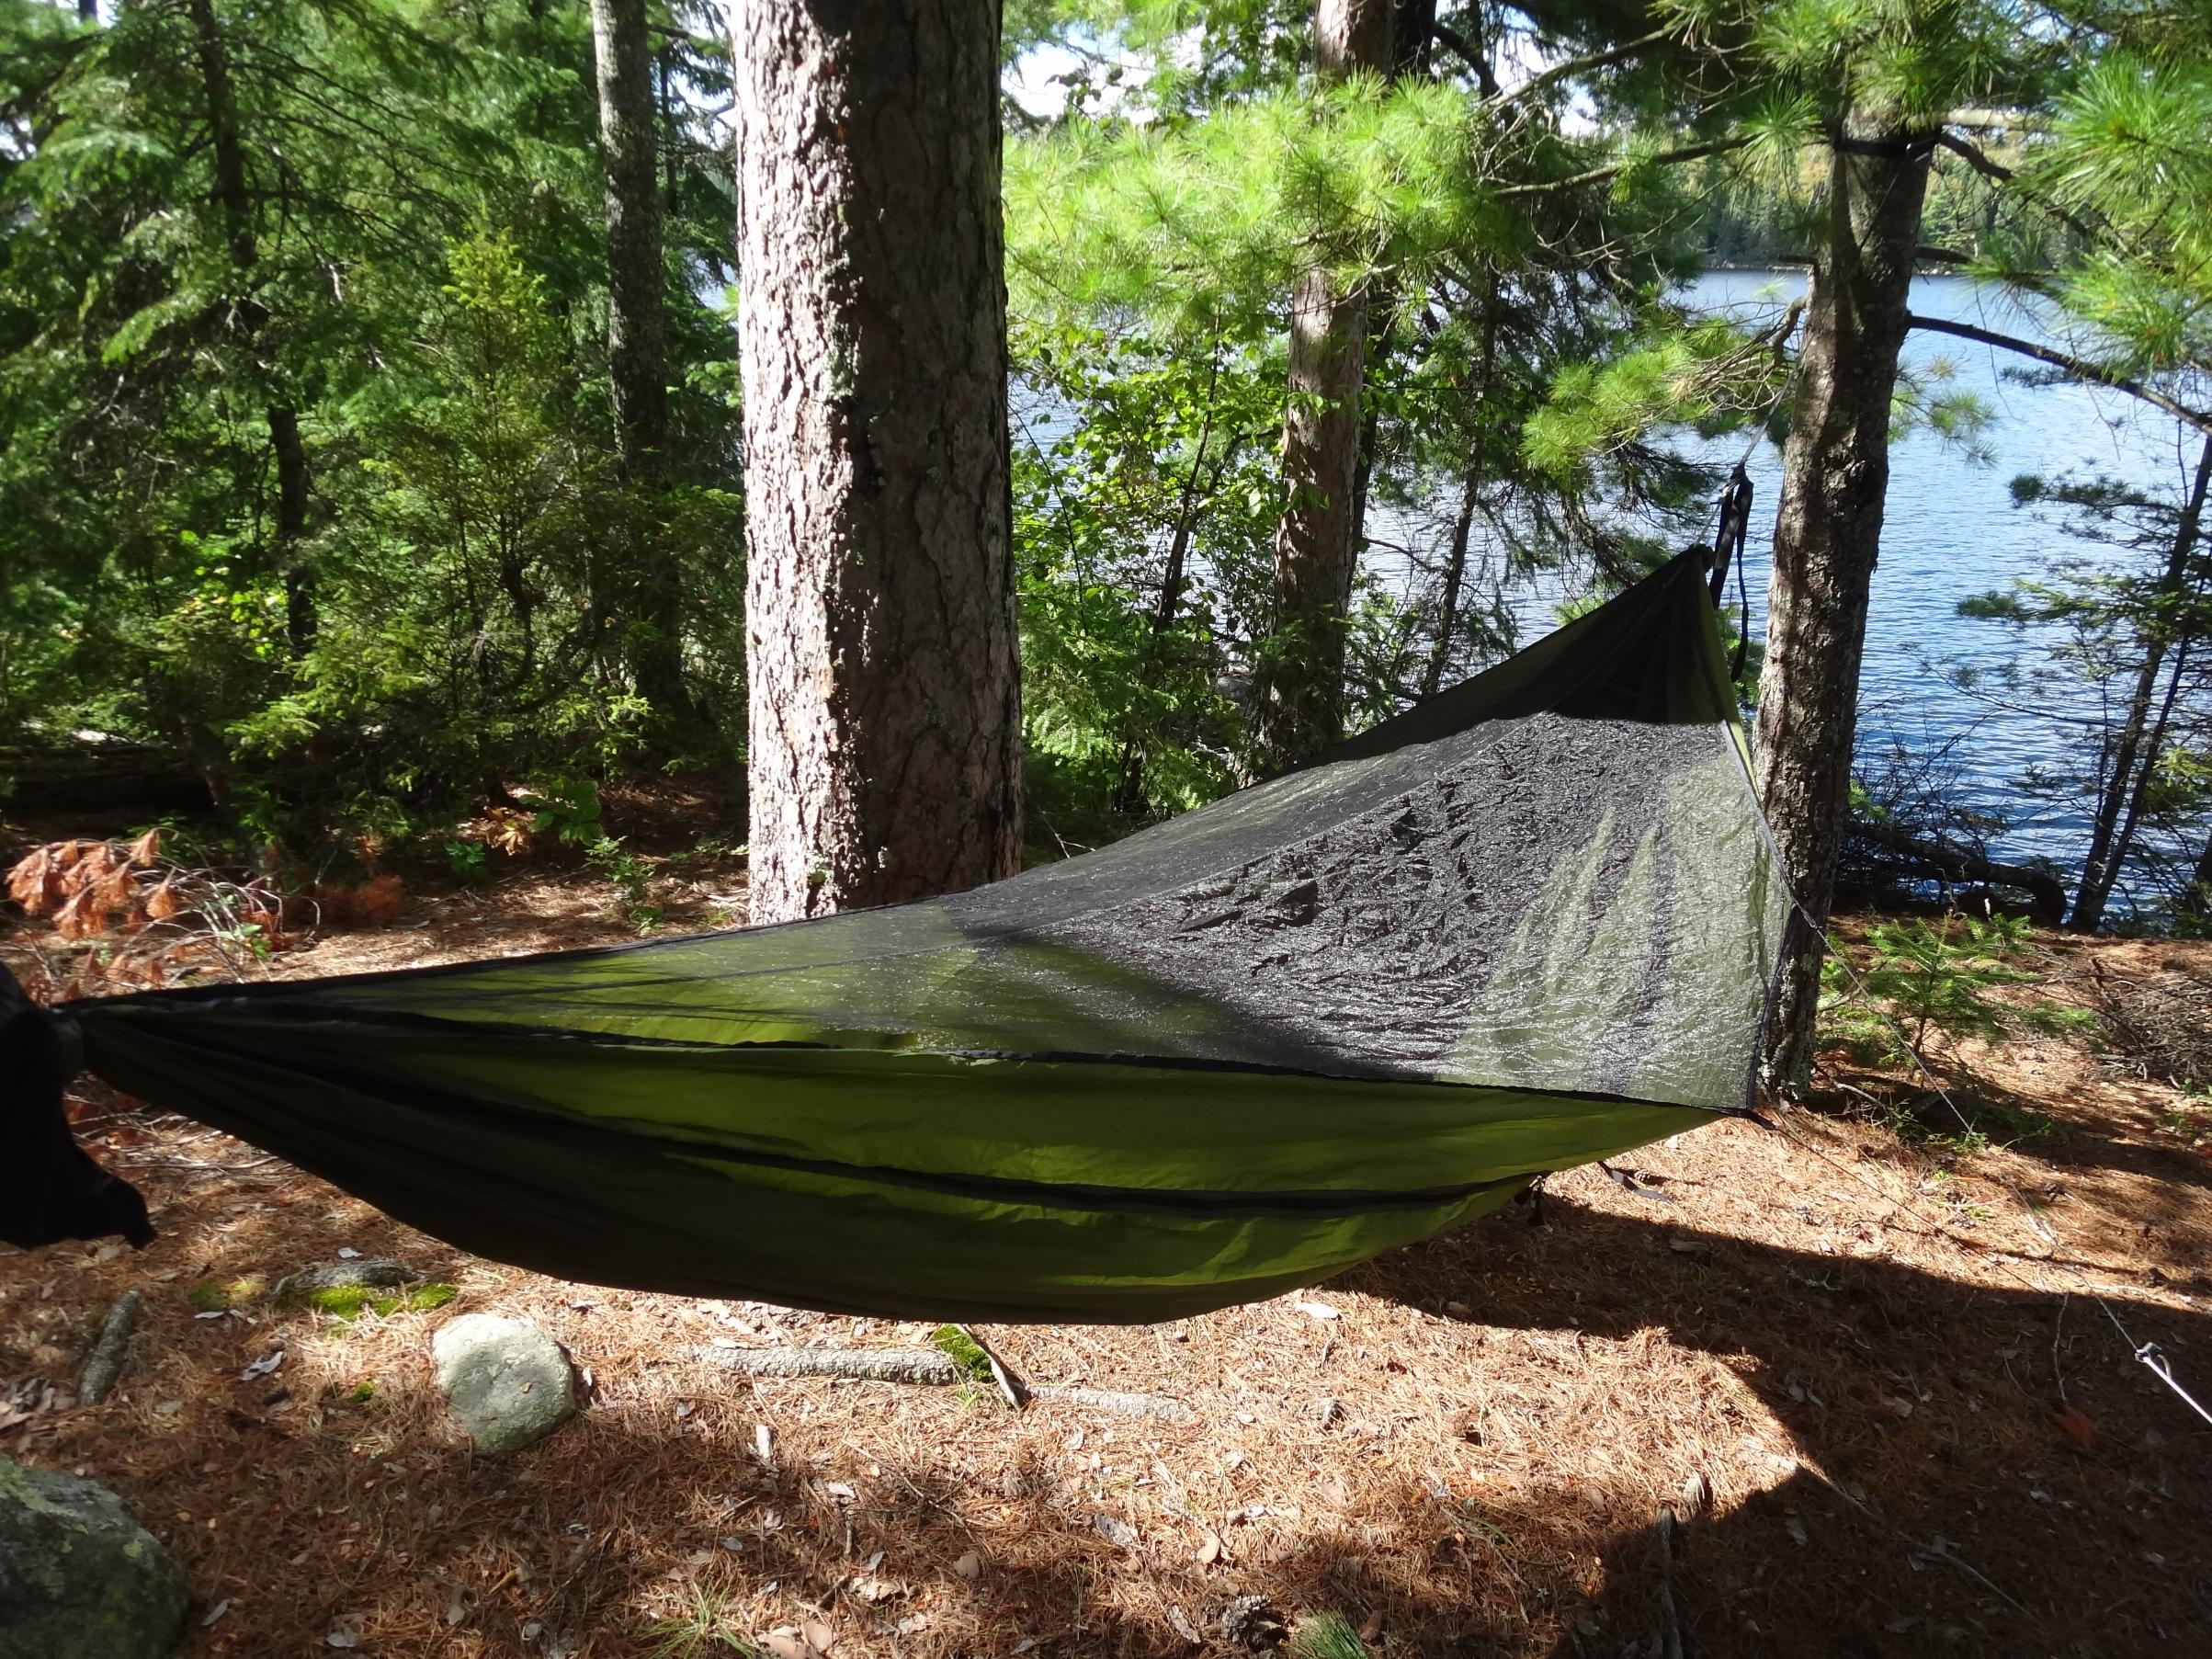 outdoor tensa about hammock exist in does hangers stand missing and protective reconnecting profoundly there umbilicus universal img like something the home of womblike to regenerative beds some a is exists why